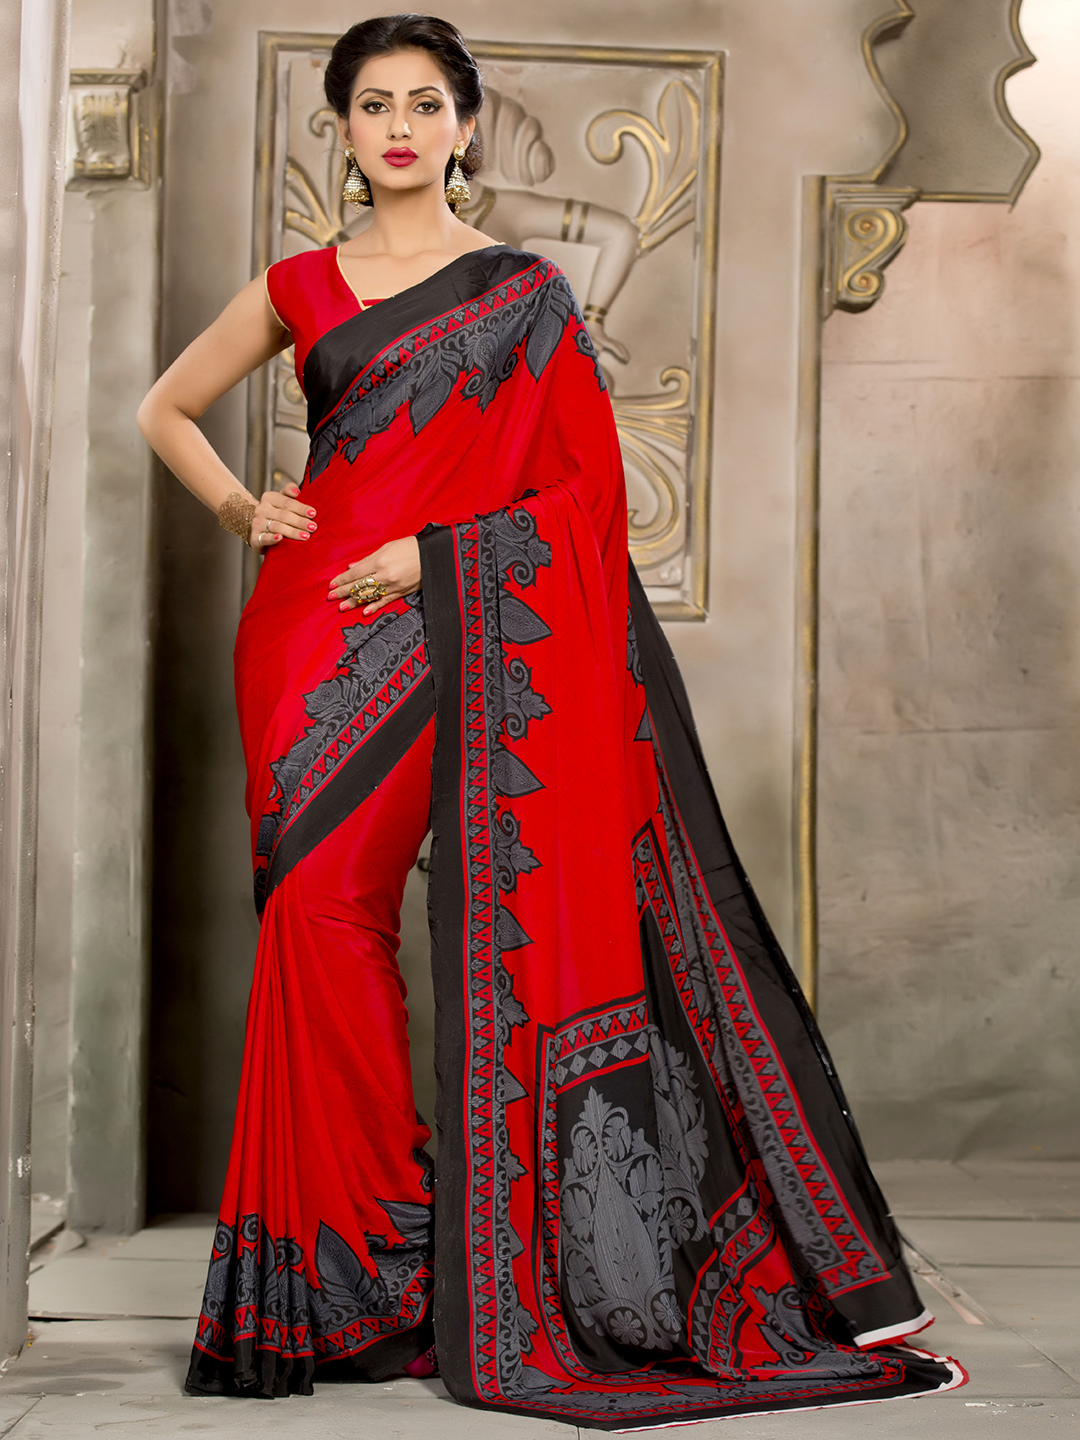 15 Red Color Beautiful Sarees for Wedding & Parties ...